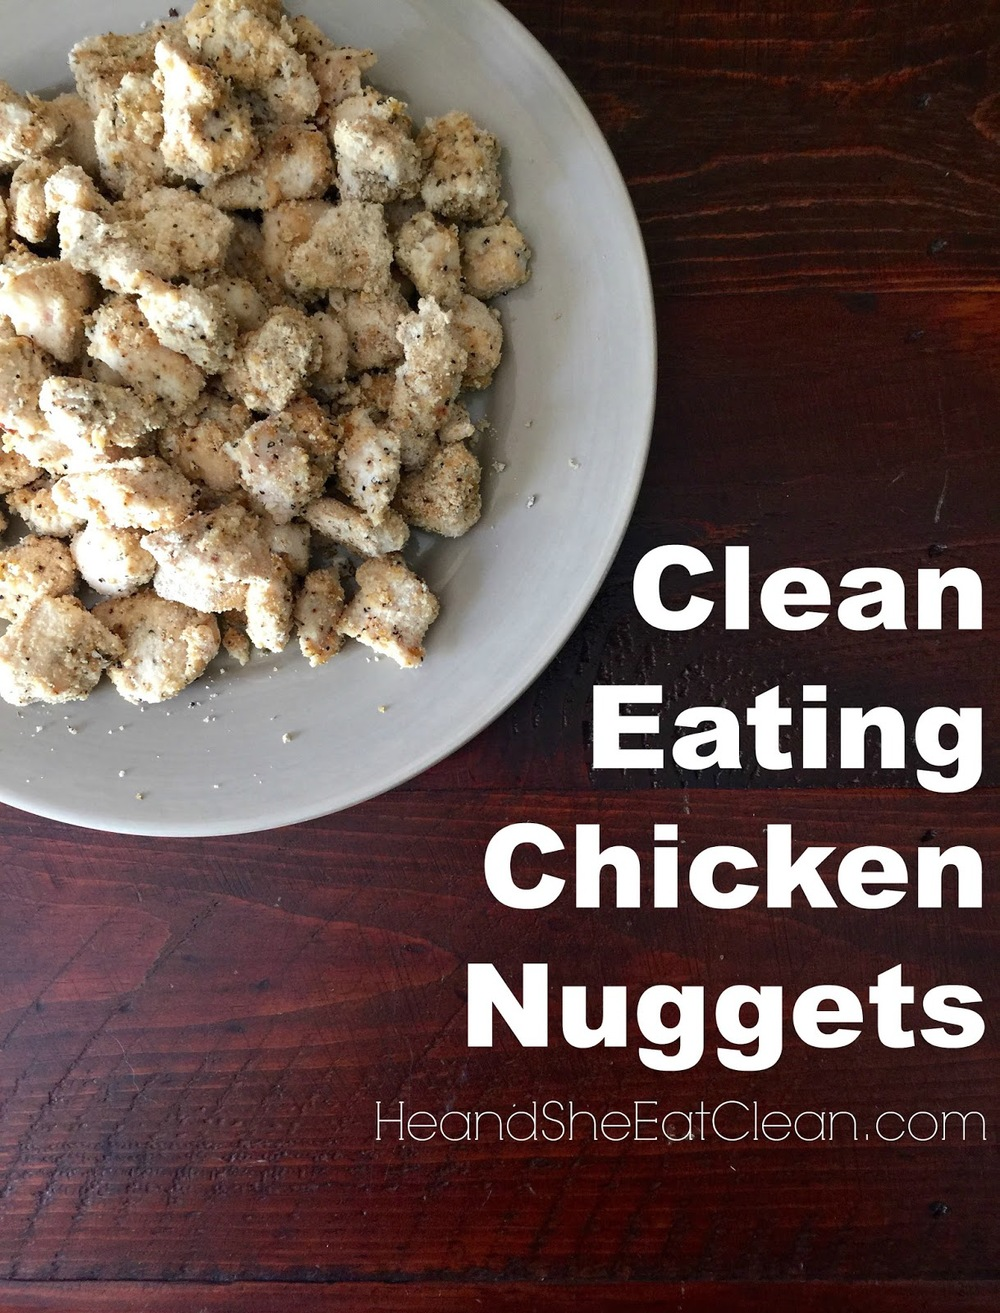 clean-eating-paleo-chicken-nuggets-he-and-she-eat-clean-recipe.jpg